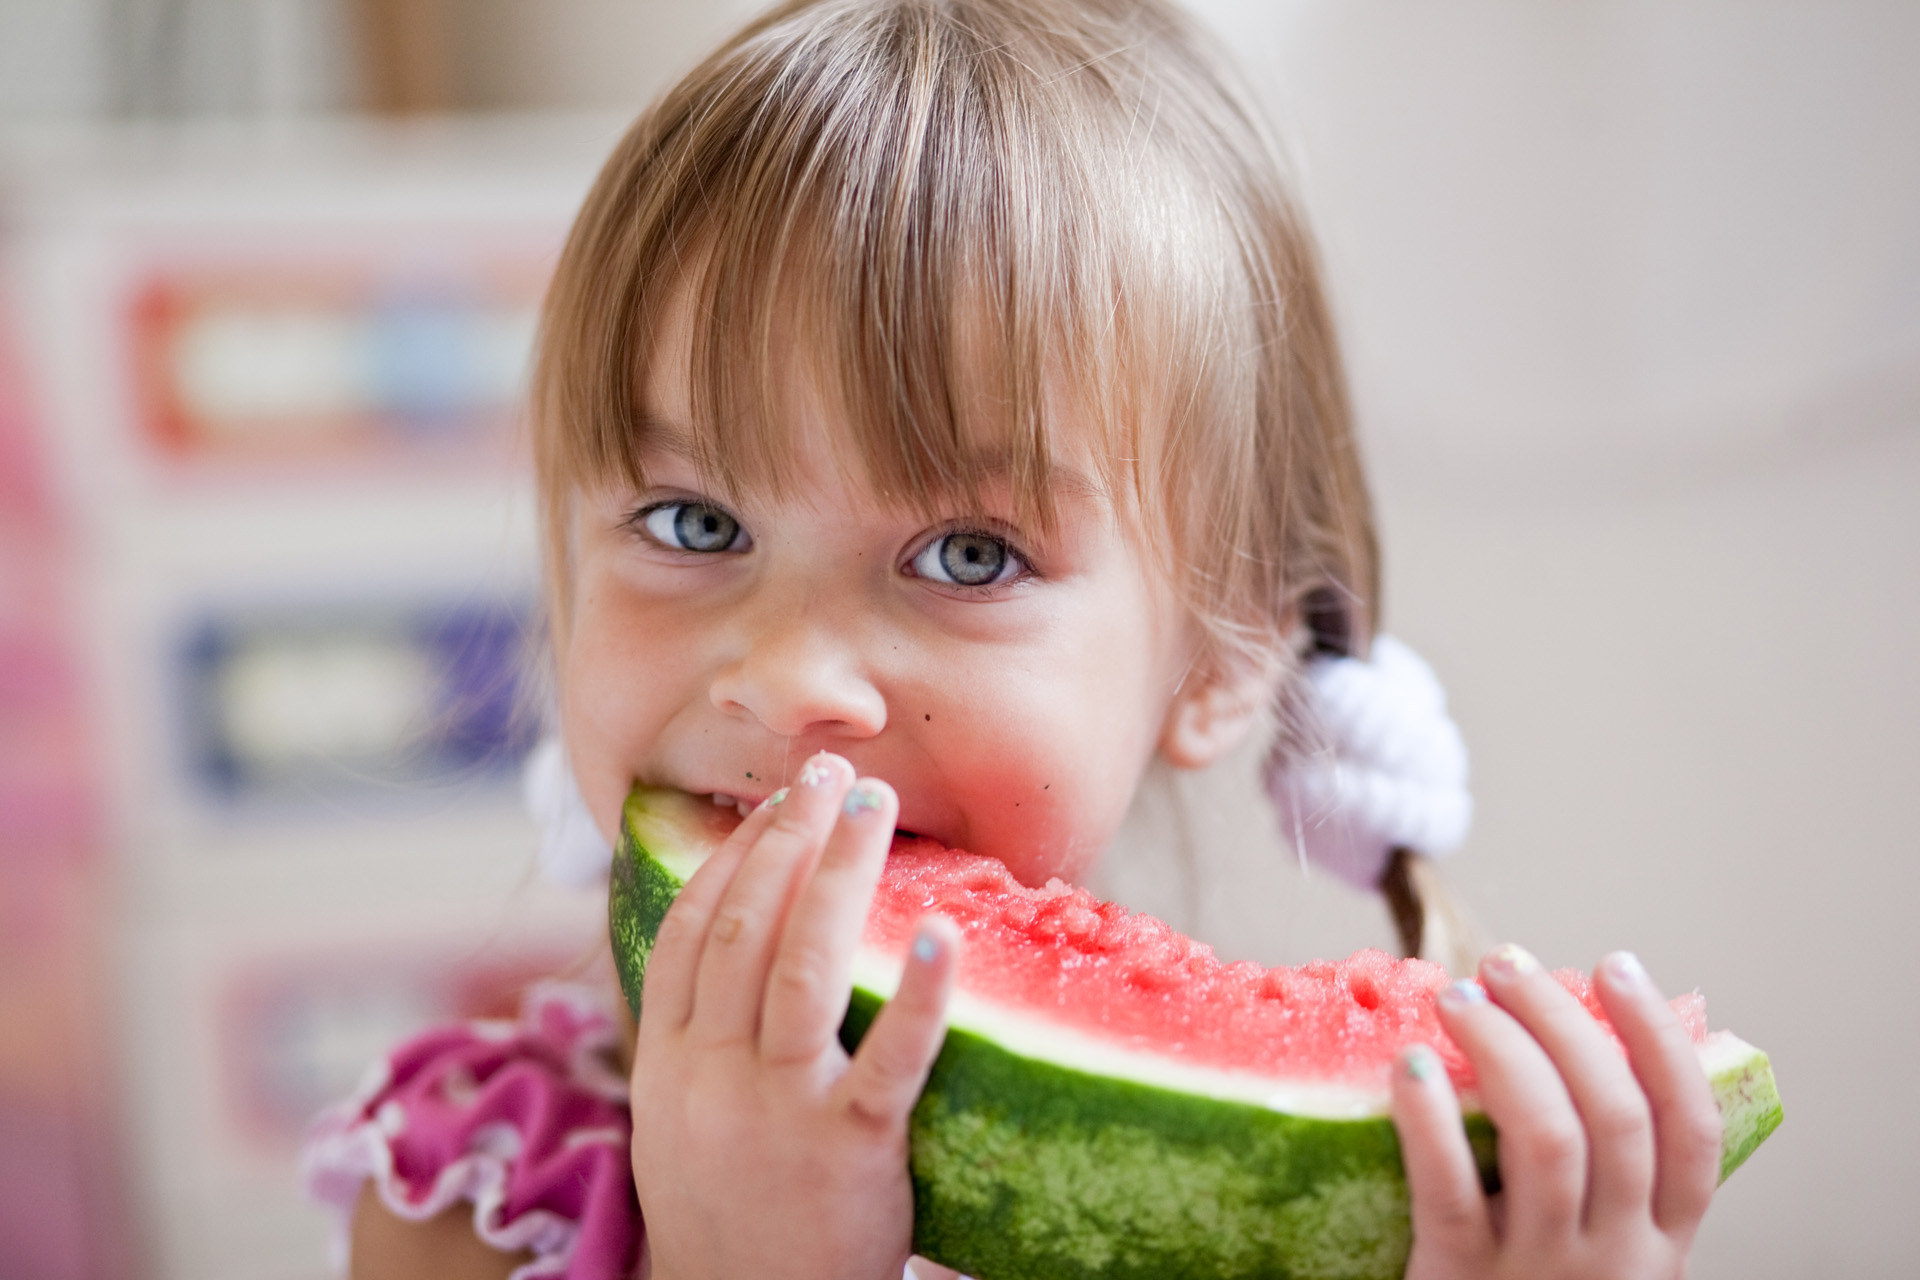 Fauuny child eating watermelon closeup